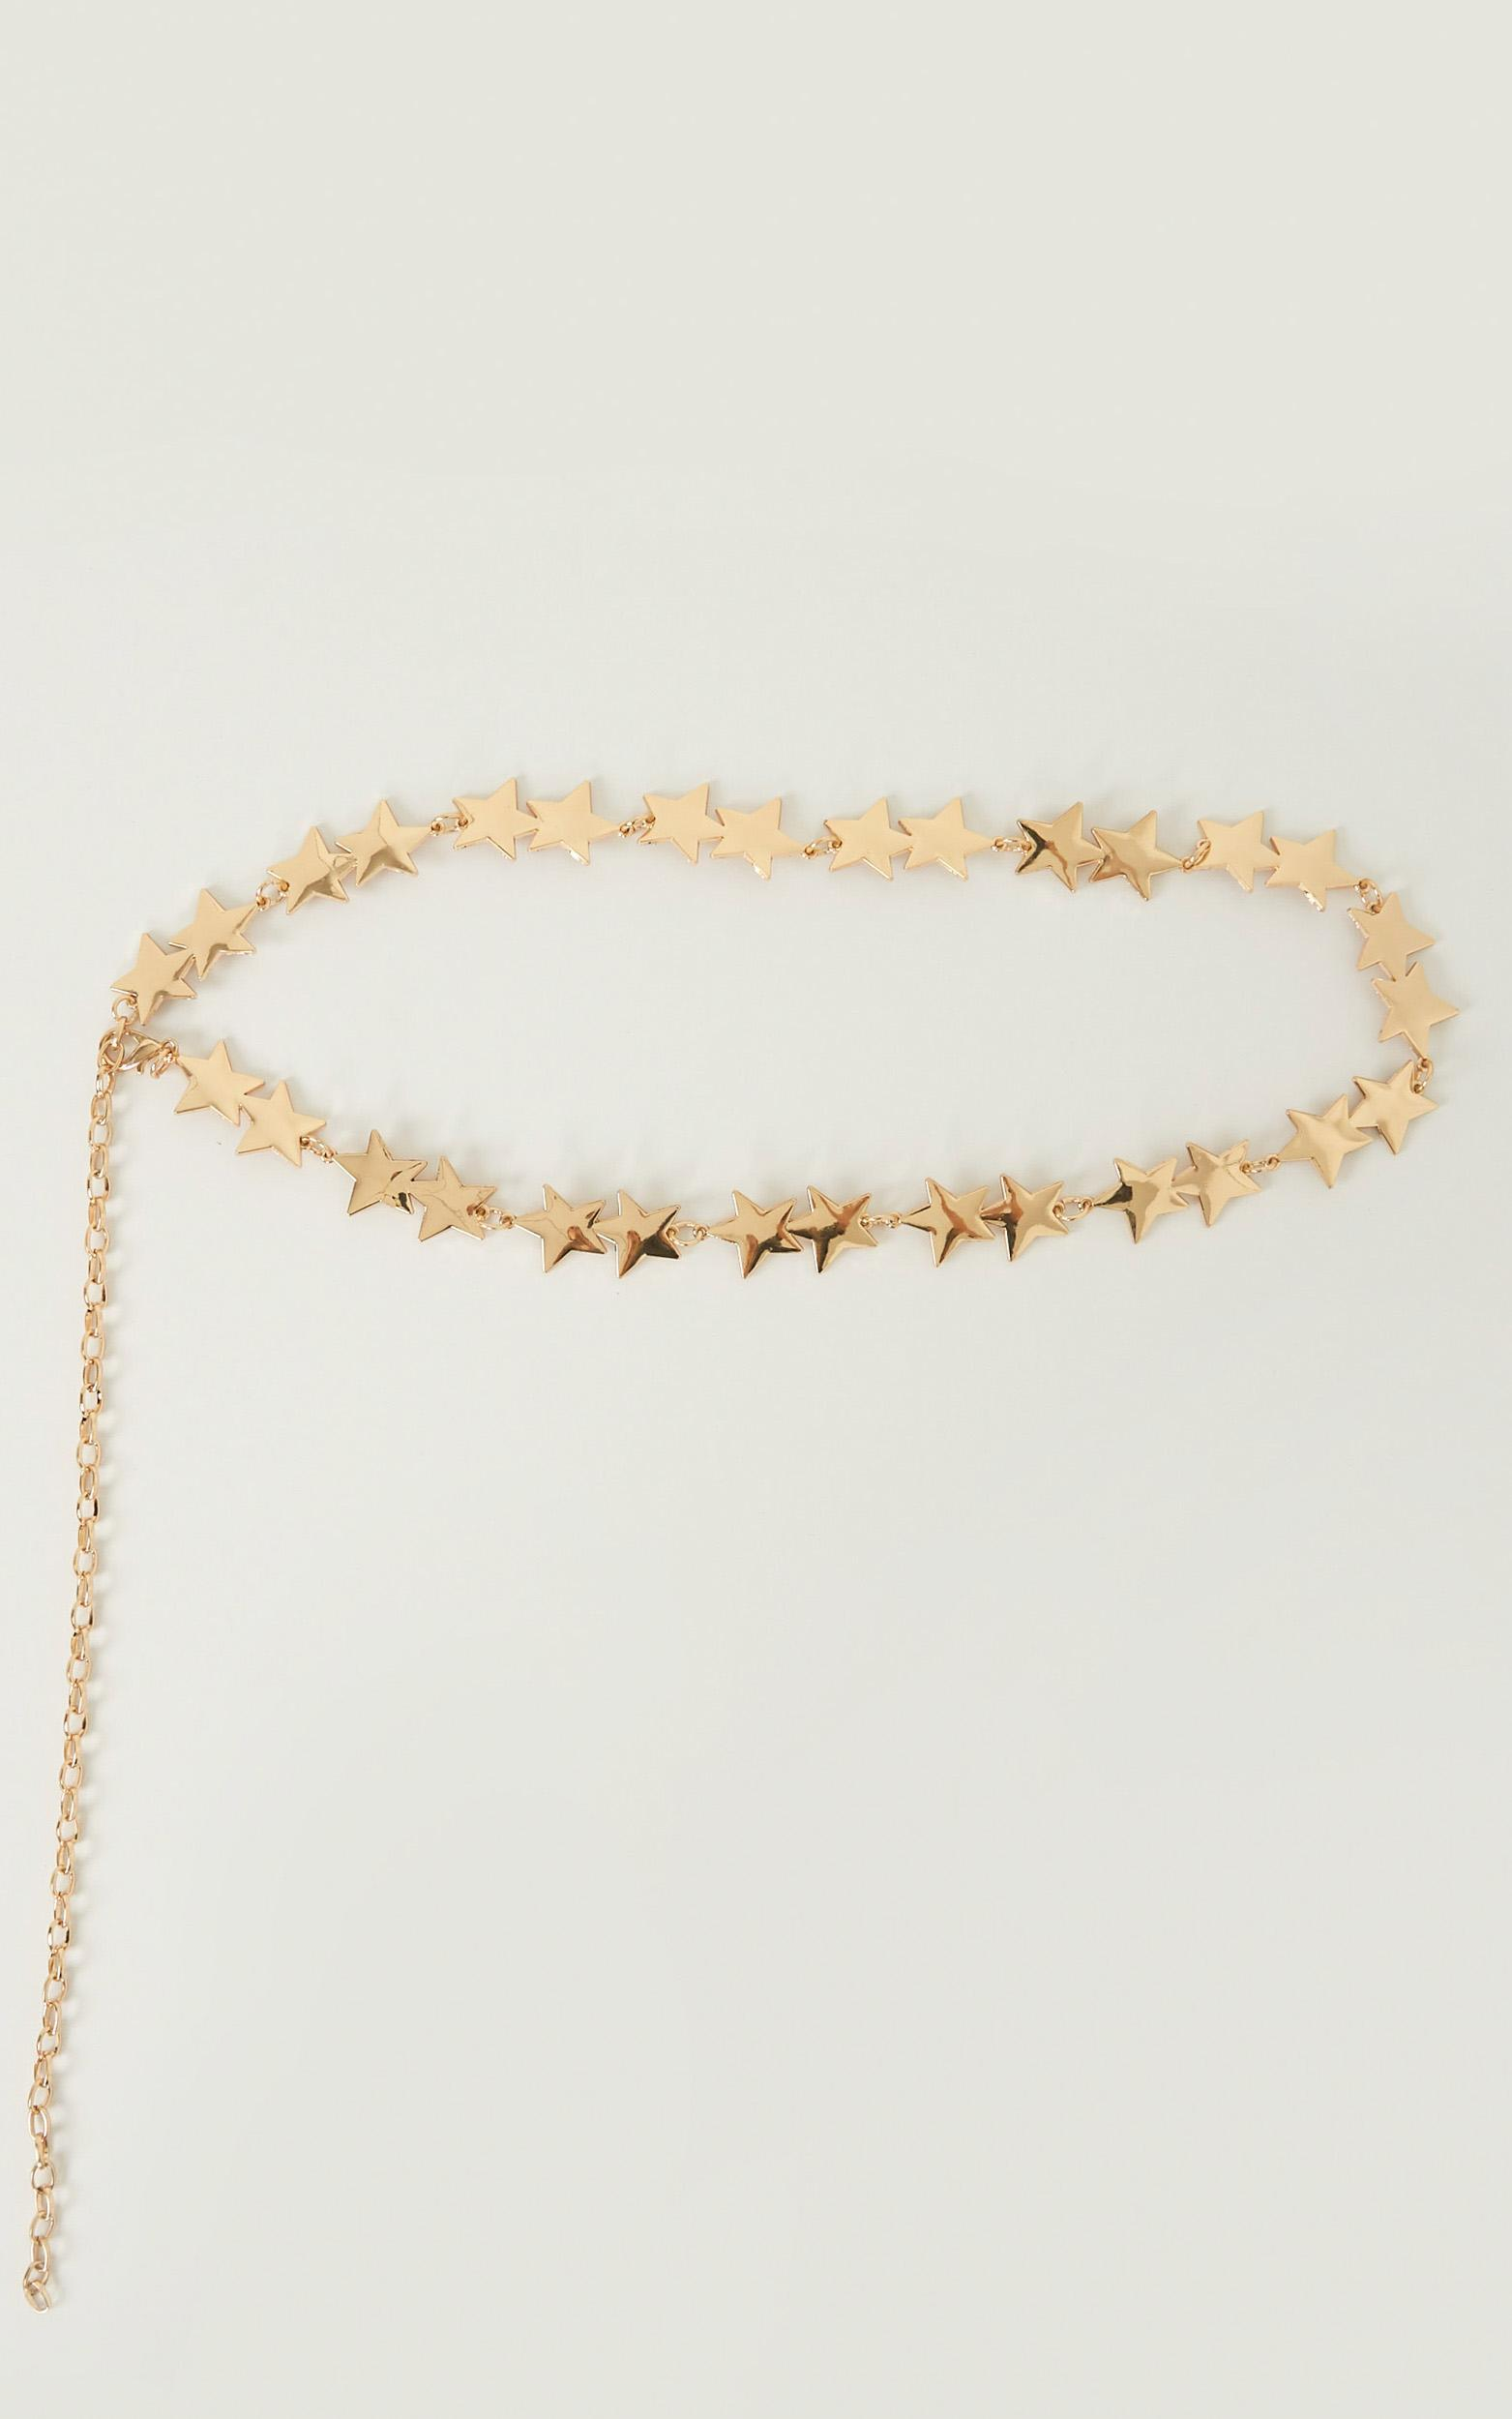 Touch The Sky Chain Belt In Gold, GLD1, hi-res image number null